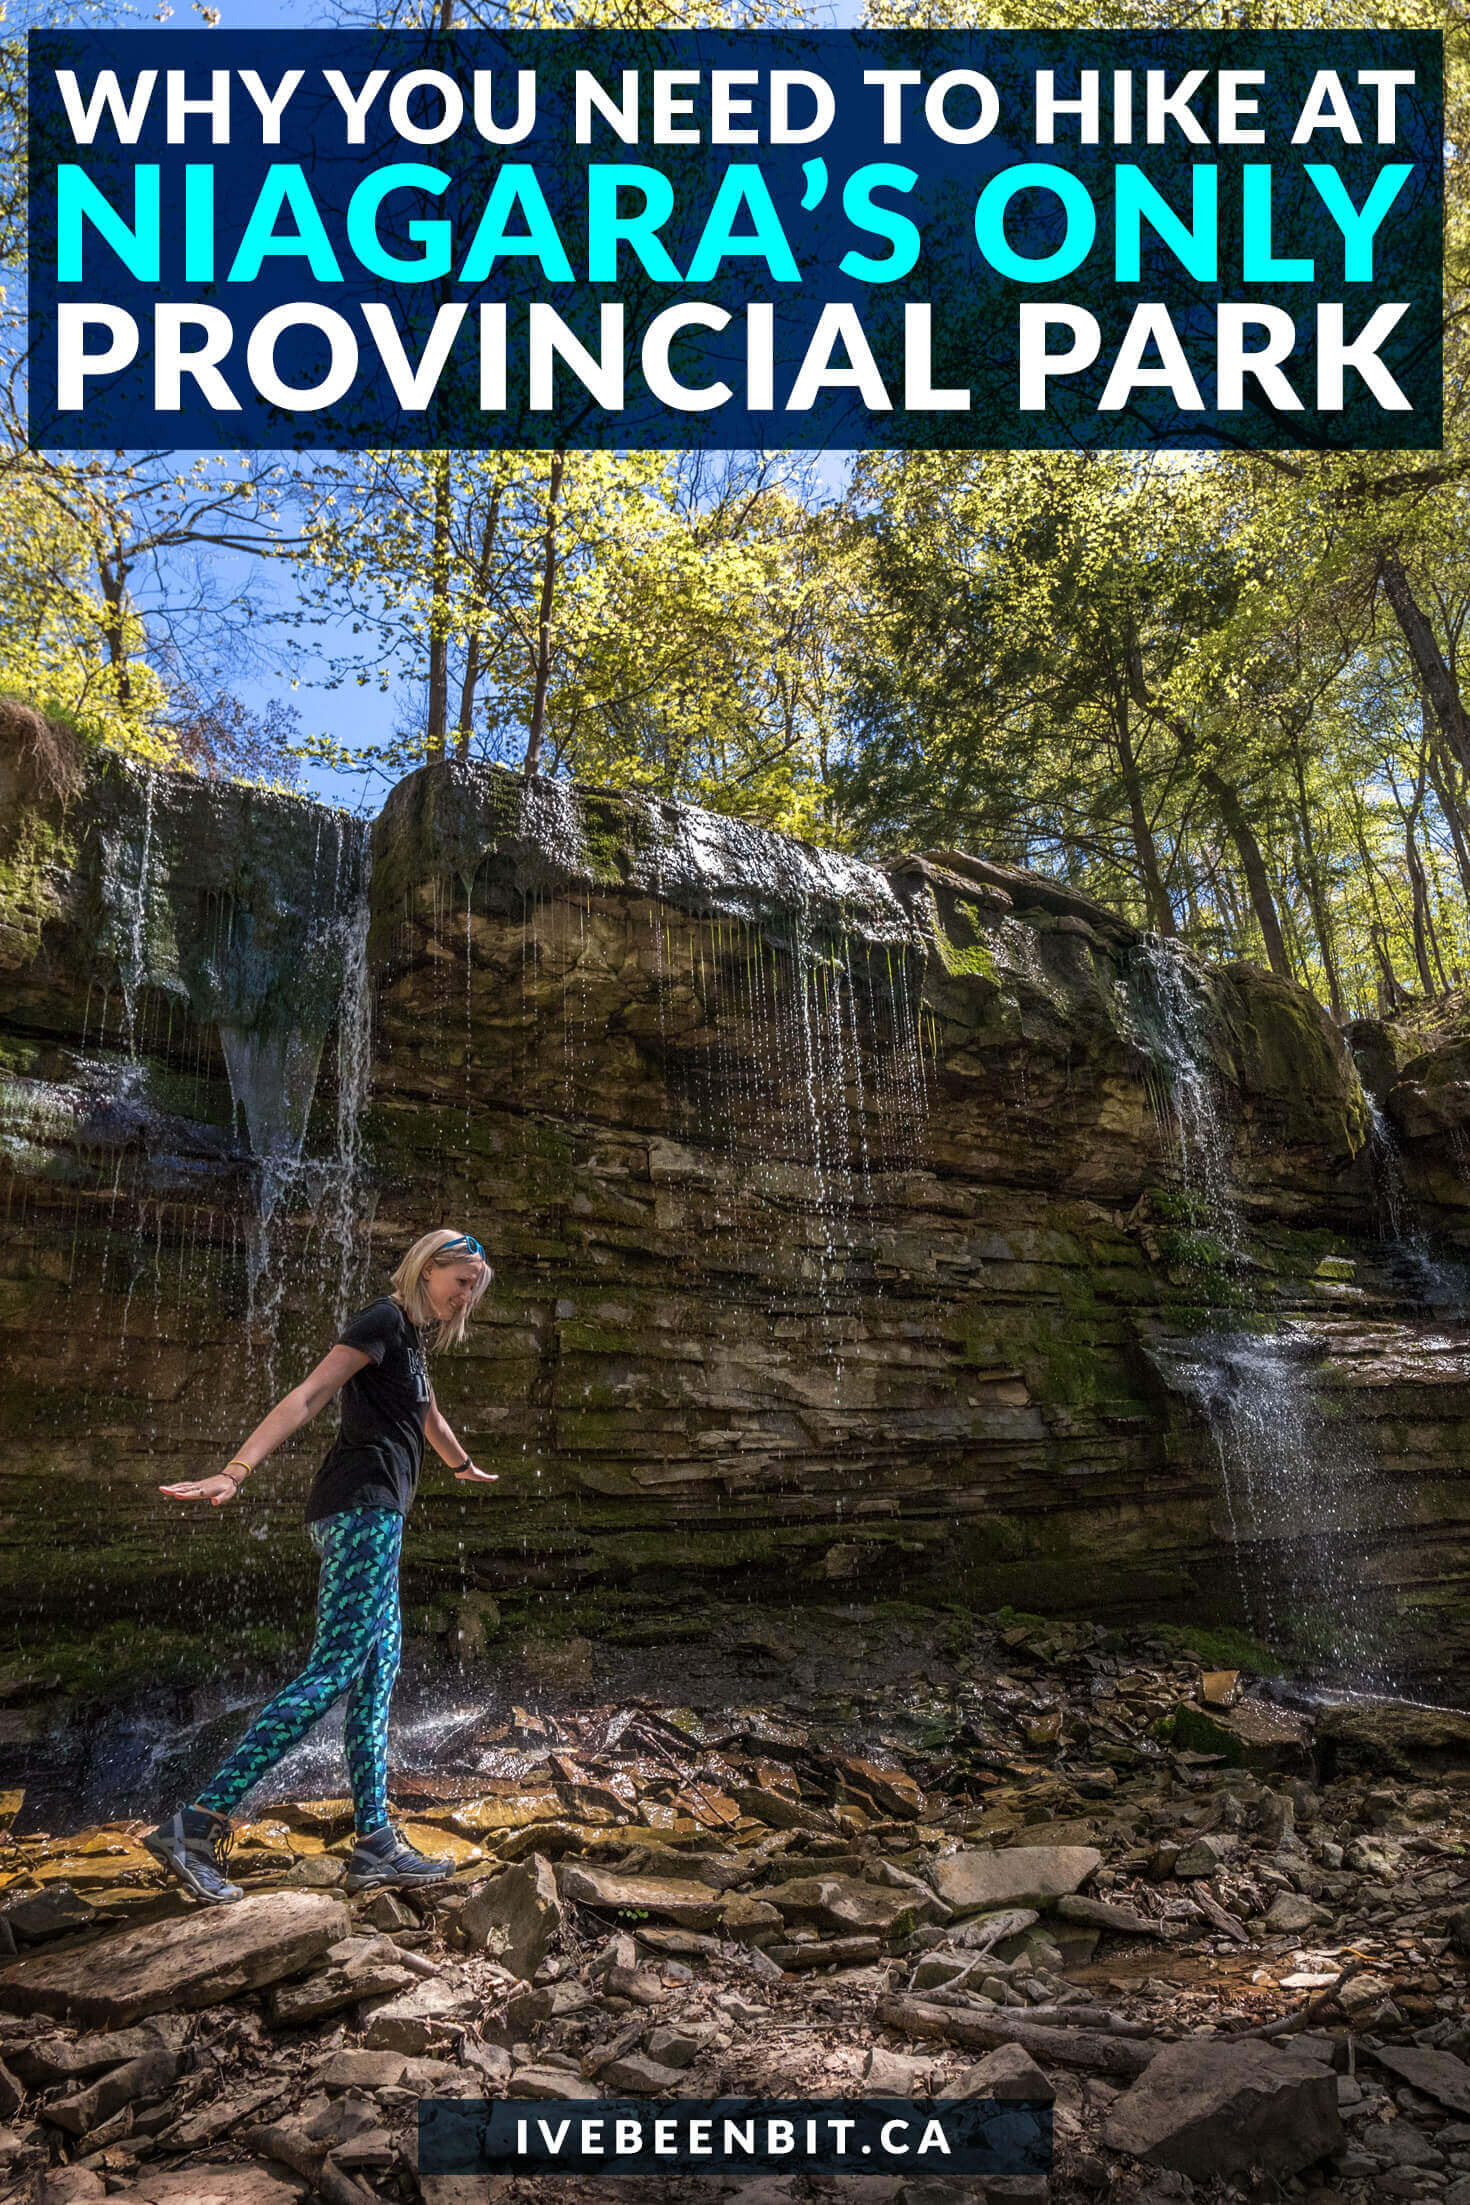 Best Guide to Short Hills Provincial Park, Niagara's Largest Park!   Hiking Trails in Niagara   Hiking in Ontario   Short Hills Park   Niagara Hiking Trails   Niagara Walking Trails   Niagara Park   Hiking Near Niagara Falls   Hikes Near Niagara Falls   Niagara Waterfalls Canada   Things to Do in Niagara Region   Waterfalls in Ontario Canada   Things to do in Niagara Falls   Ontario Waterfall Hikes   Ontario Hiking Trails   Hike Niagara   Hike Ontario   #Ontario #Summer #Waterfalls